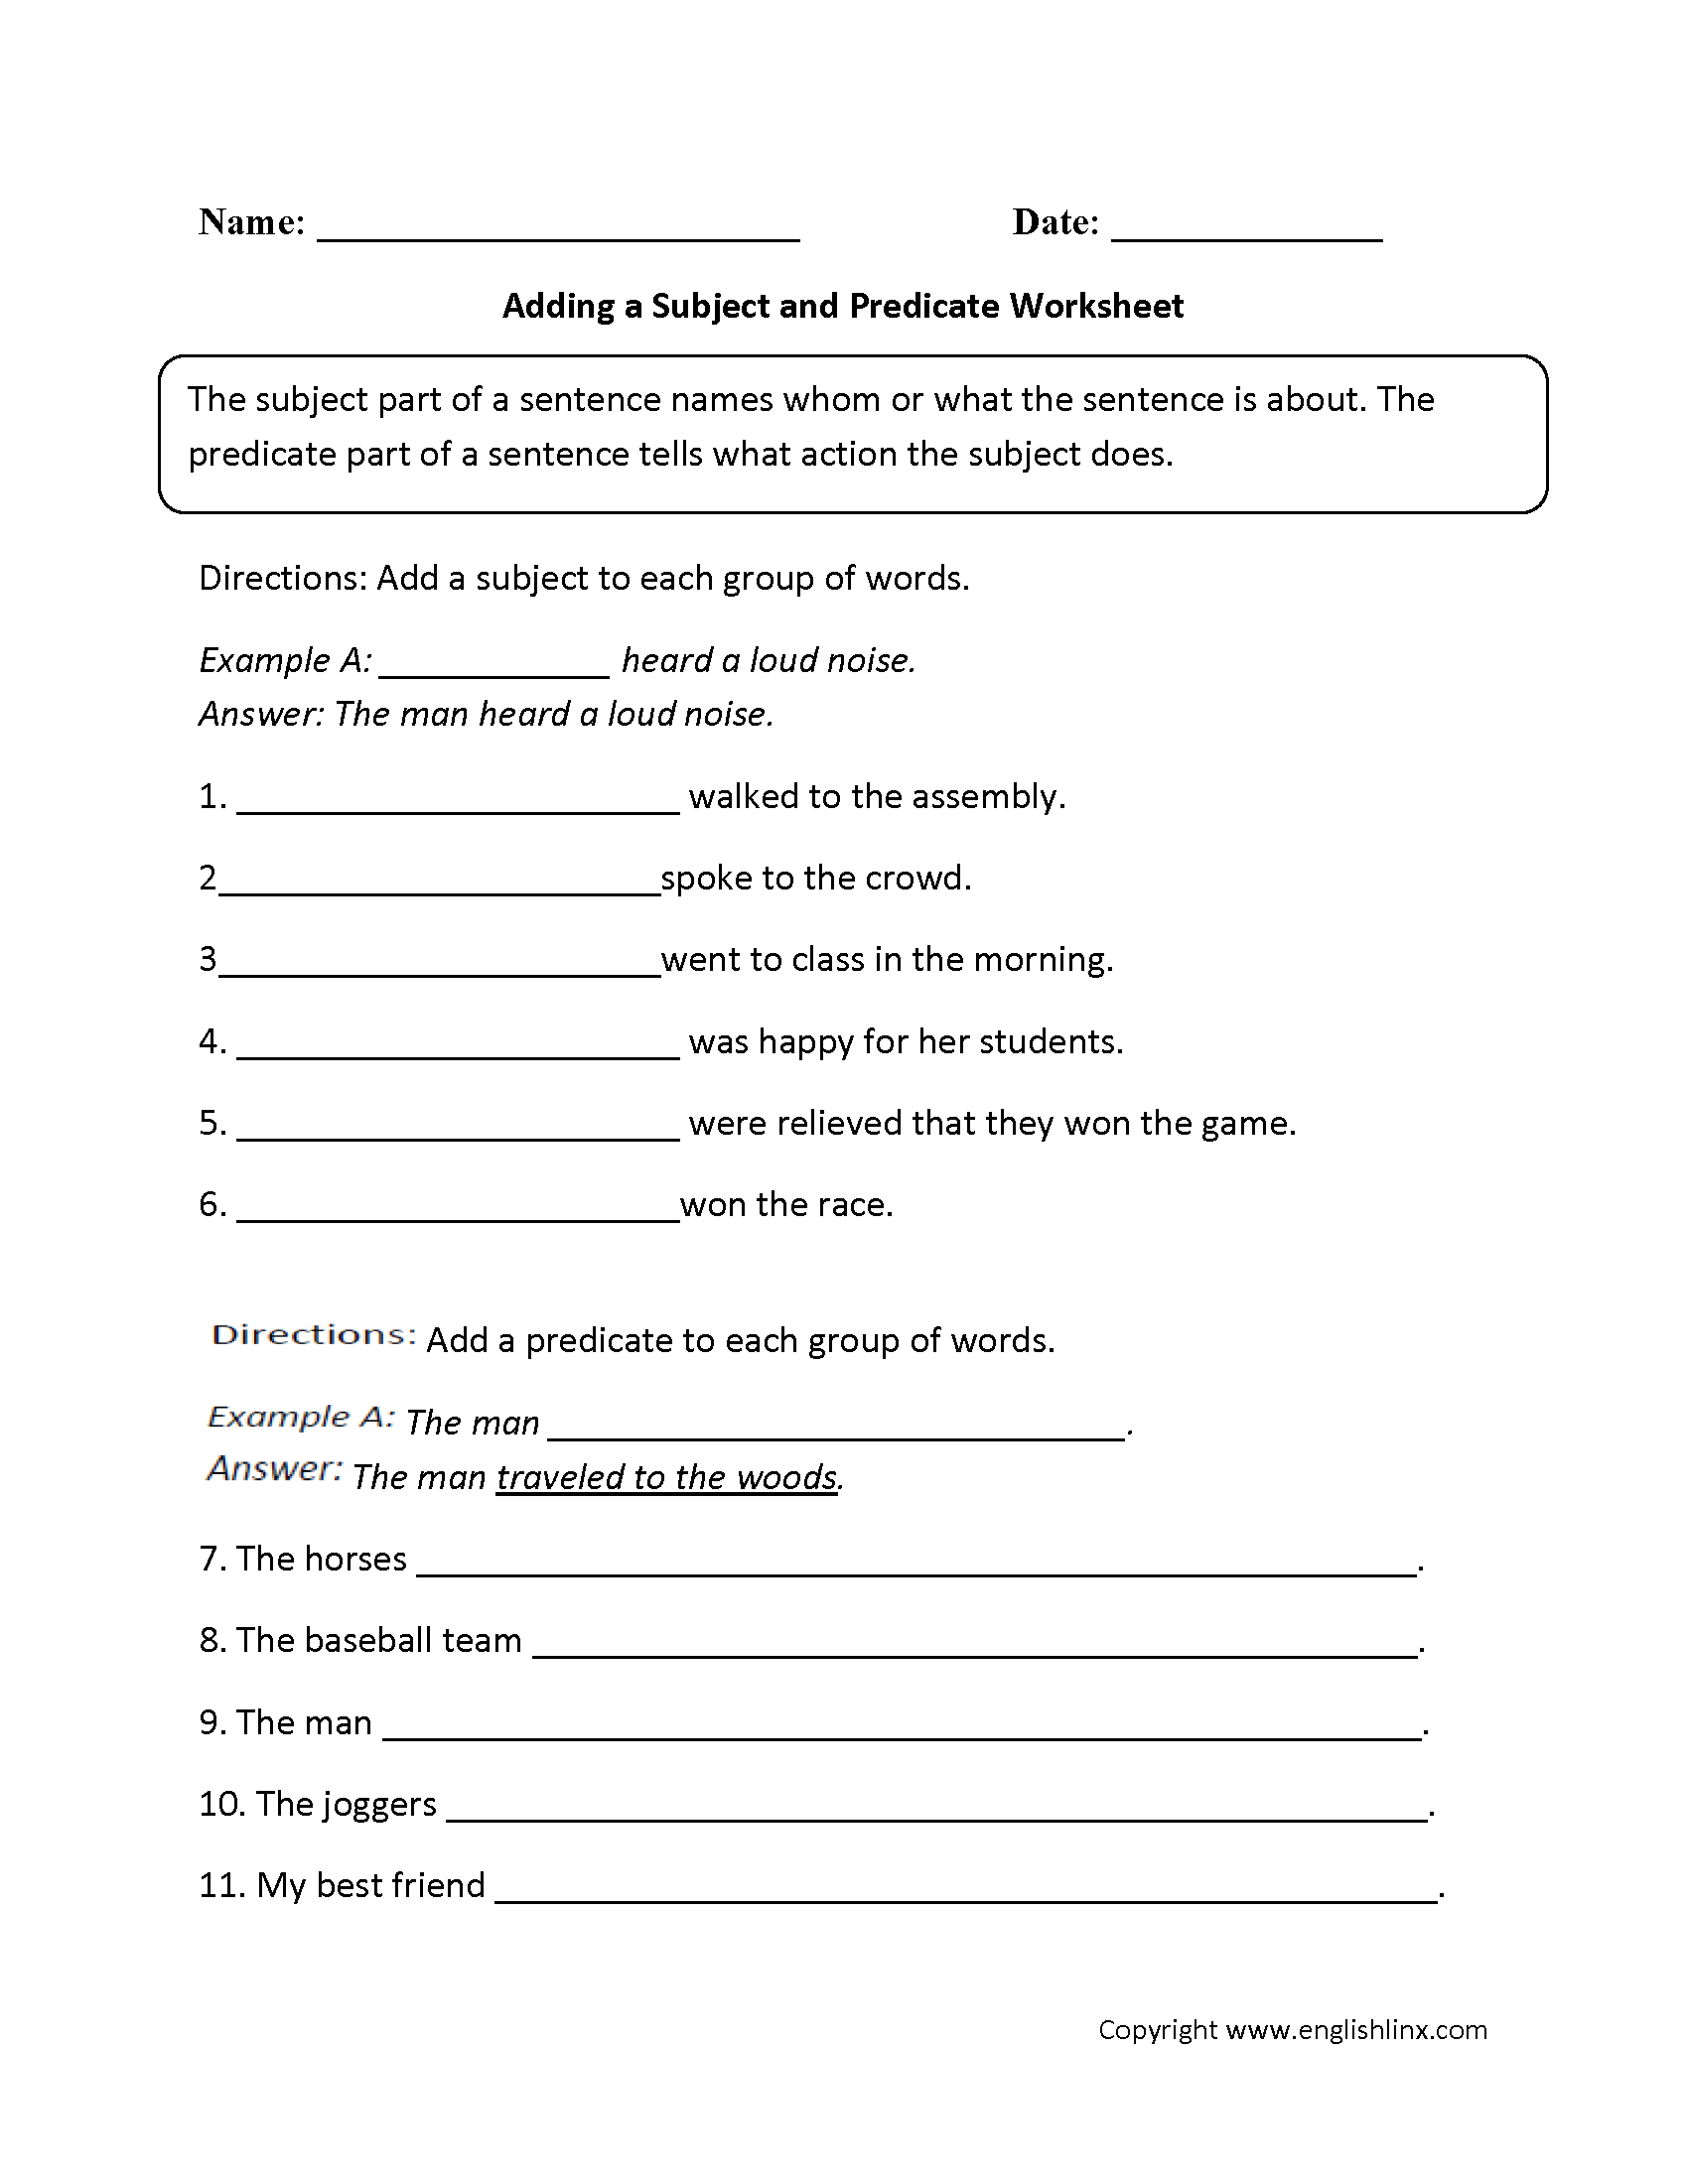 Worksheets Free Grammar Worksheets For Middle School adding a subject and predicate worksheet englishlinx com board these worksheets are great for working with use worksheet